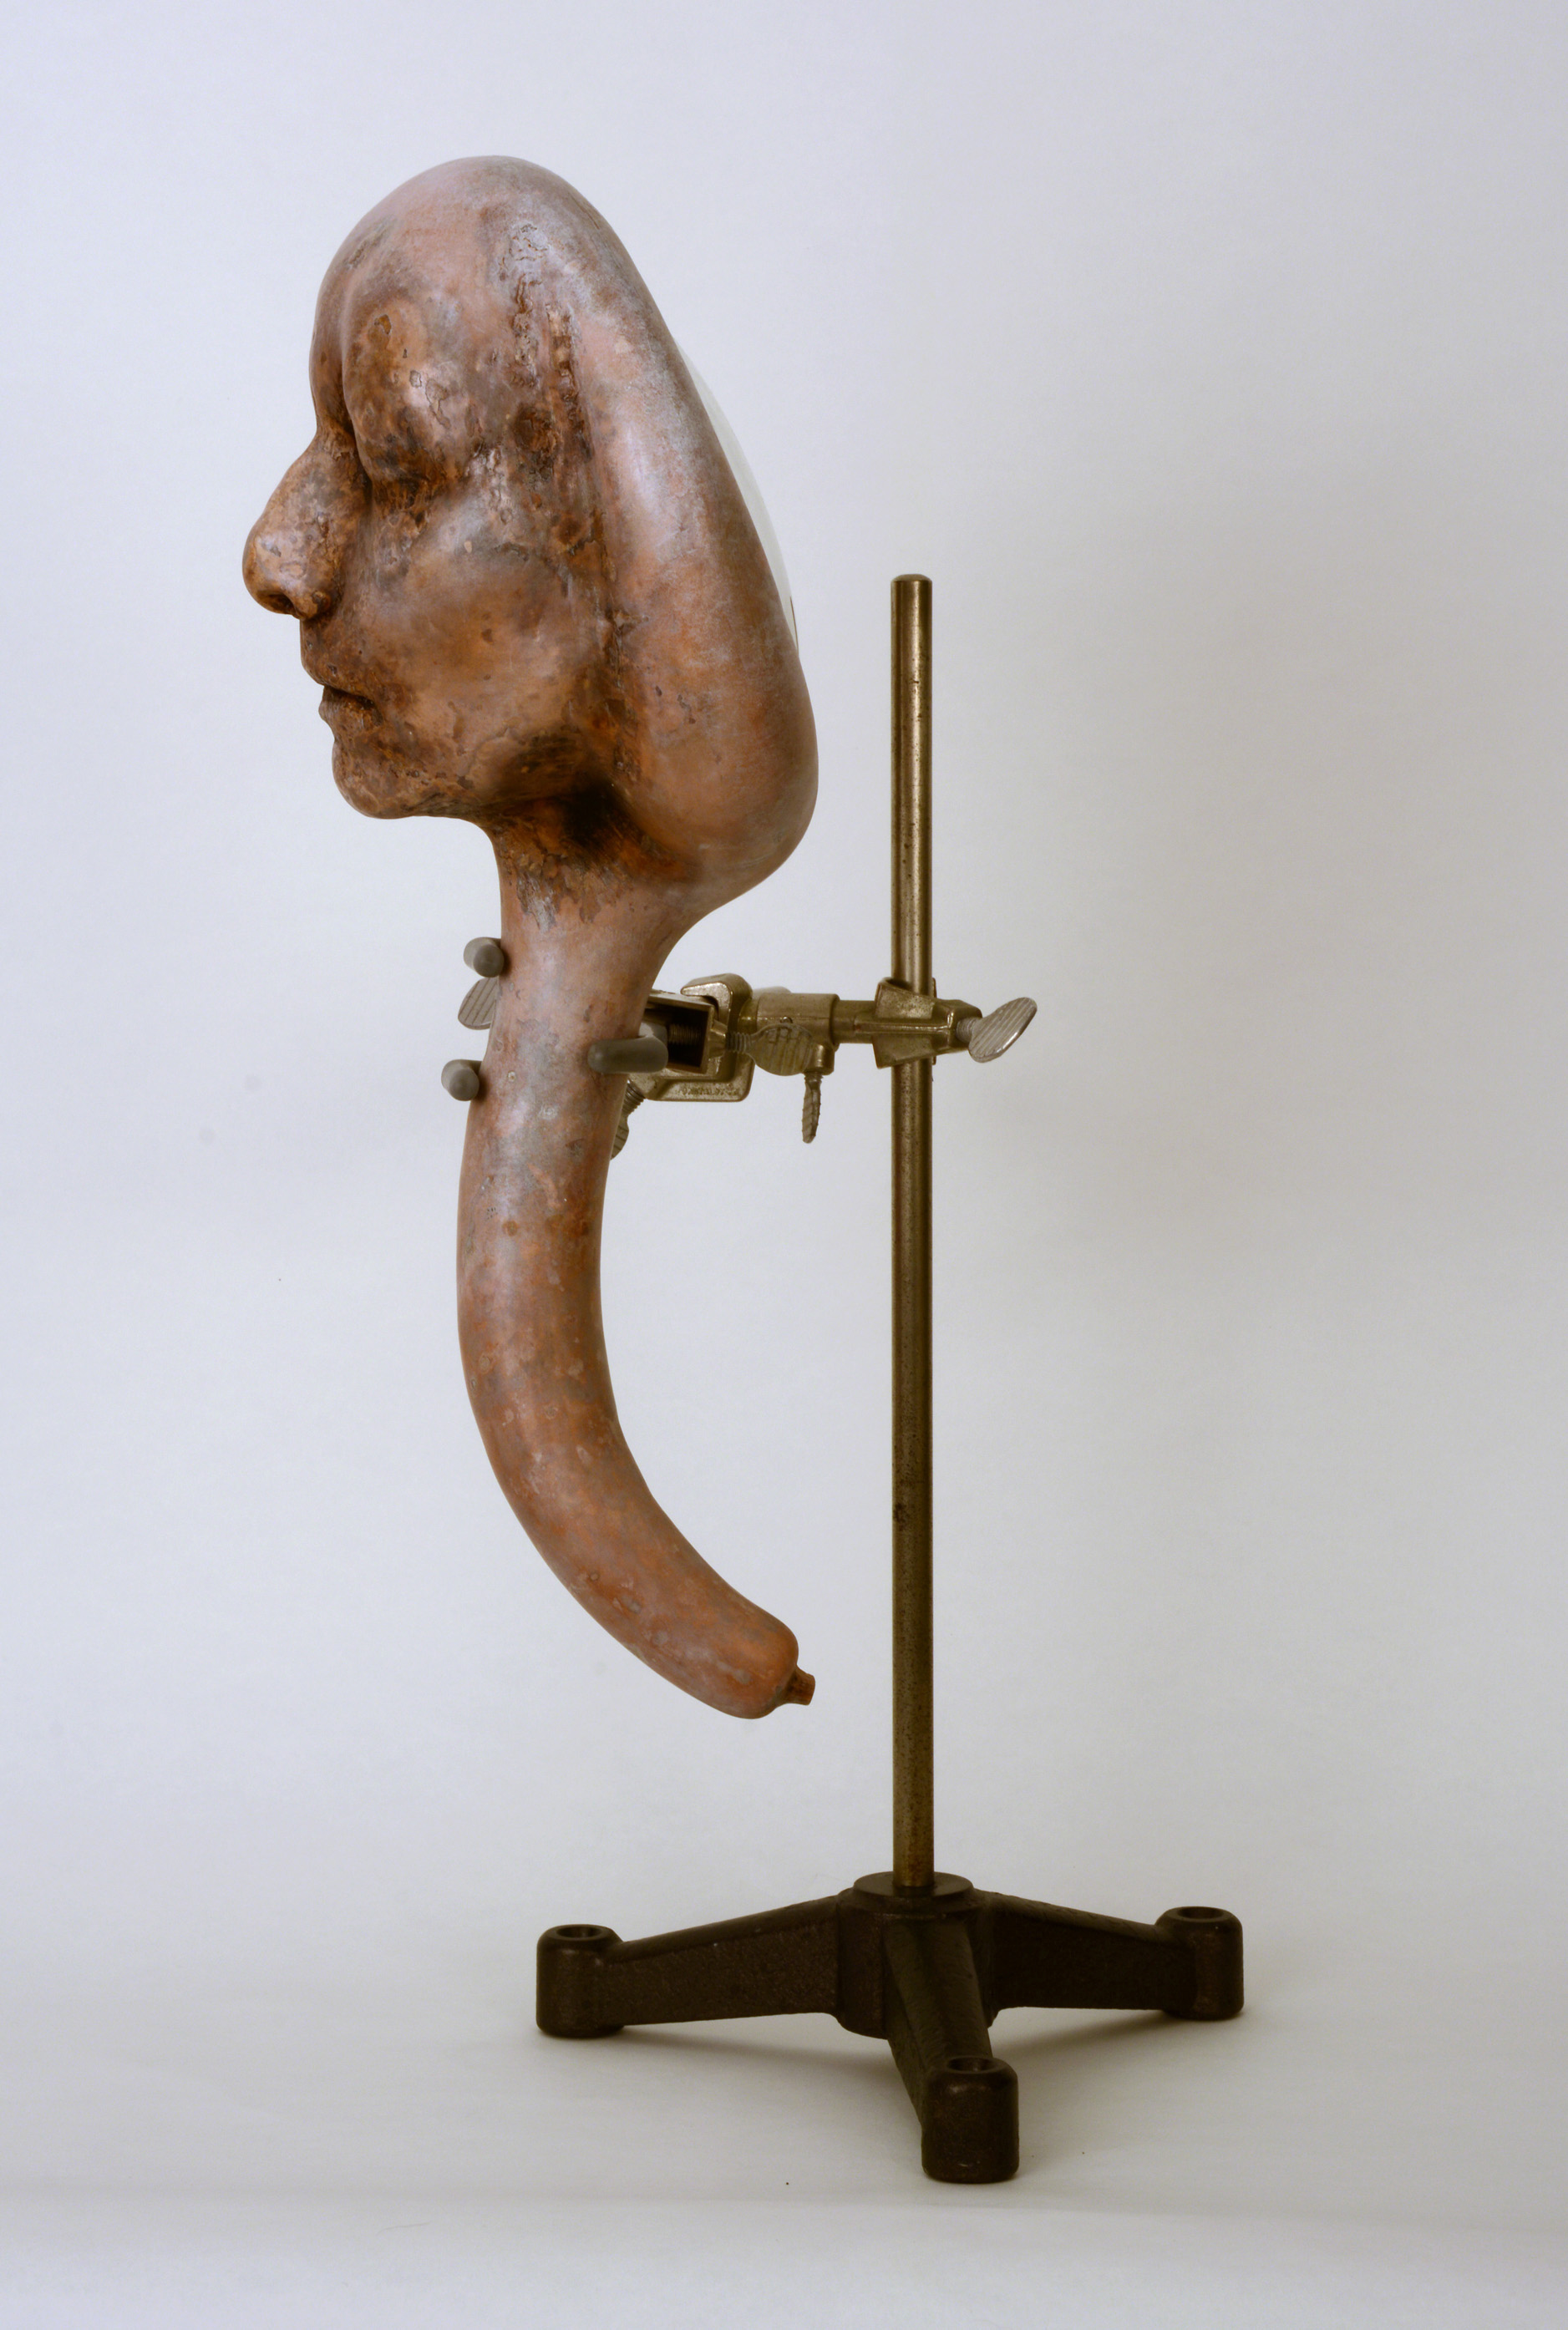 Imperfect Consilience, constrained (mold grown) gourd, metal stand, glass and copper